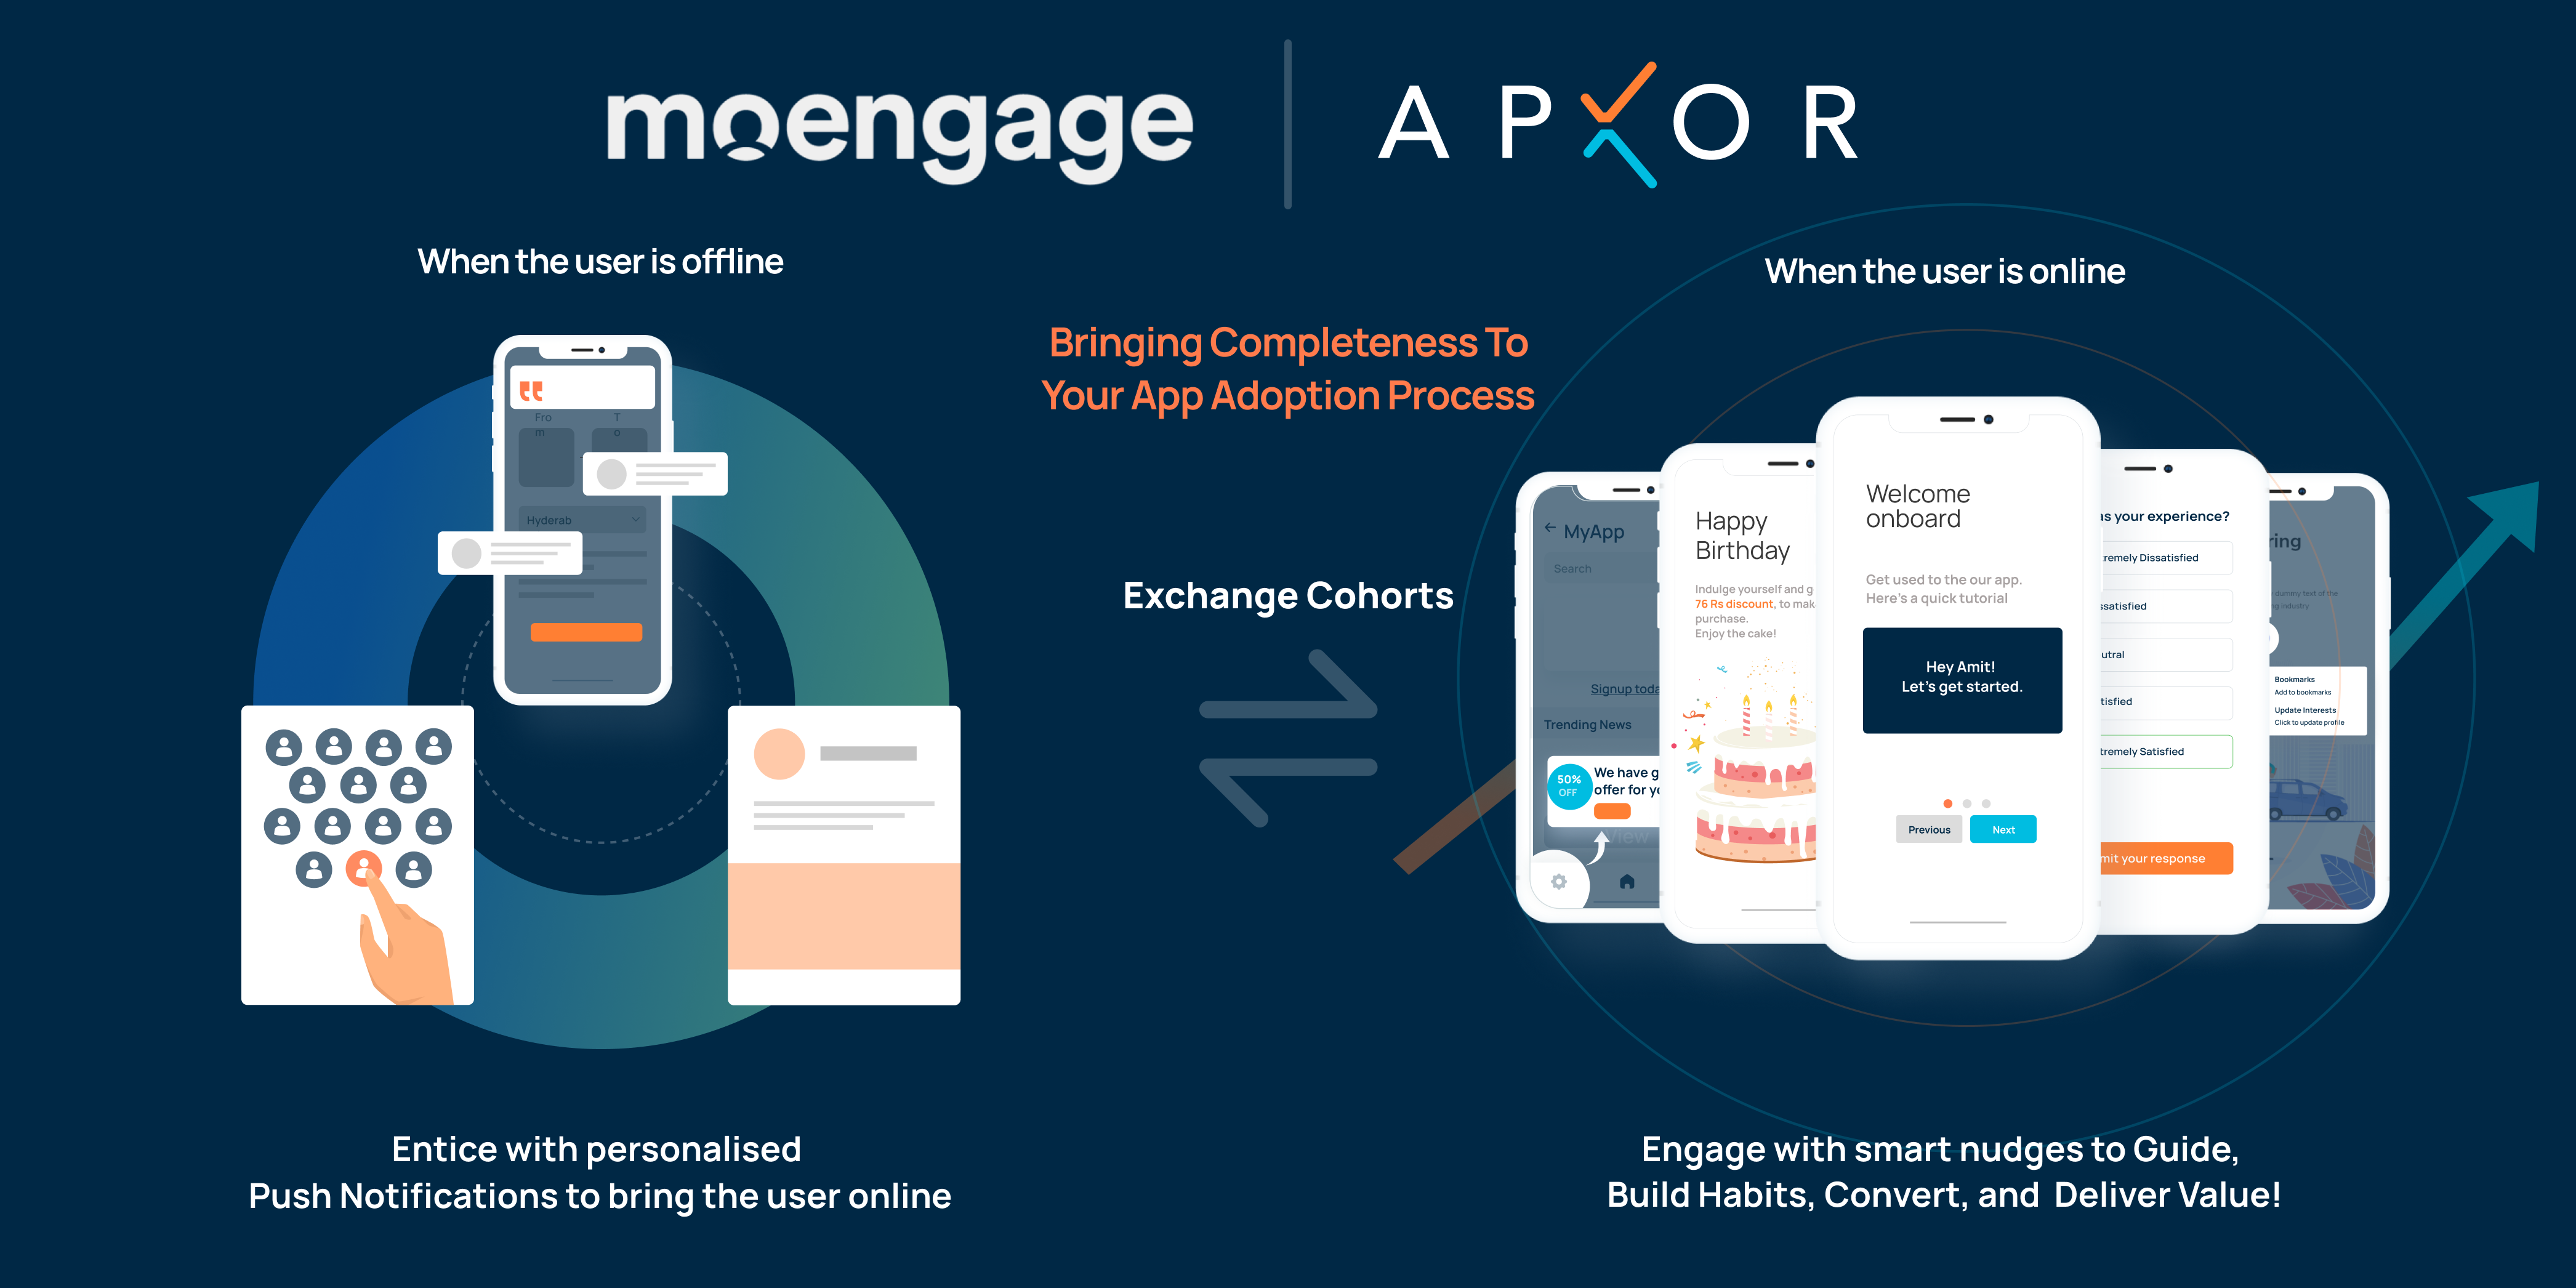 Apxor + MoEngage Partnership : Bring Completeness to Your App Adoption Process